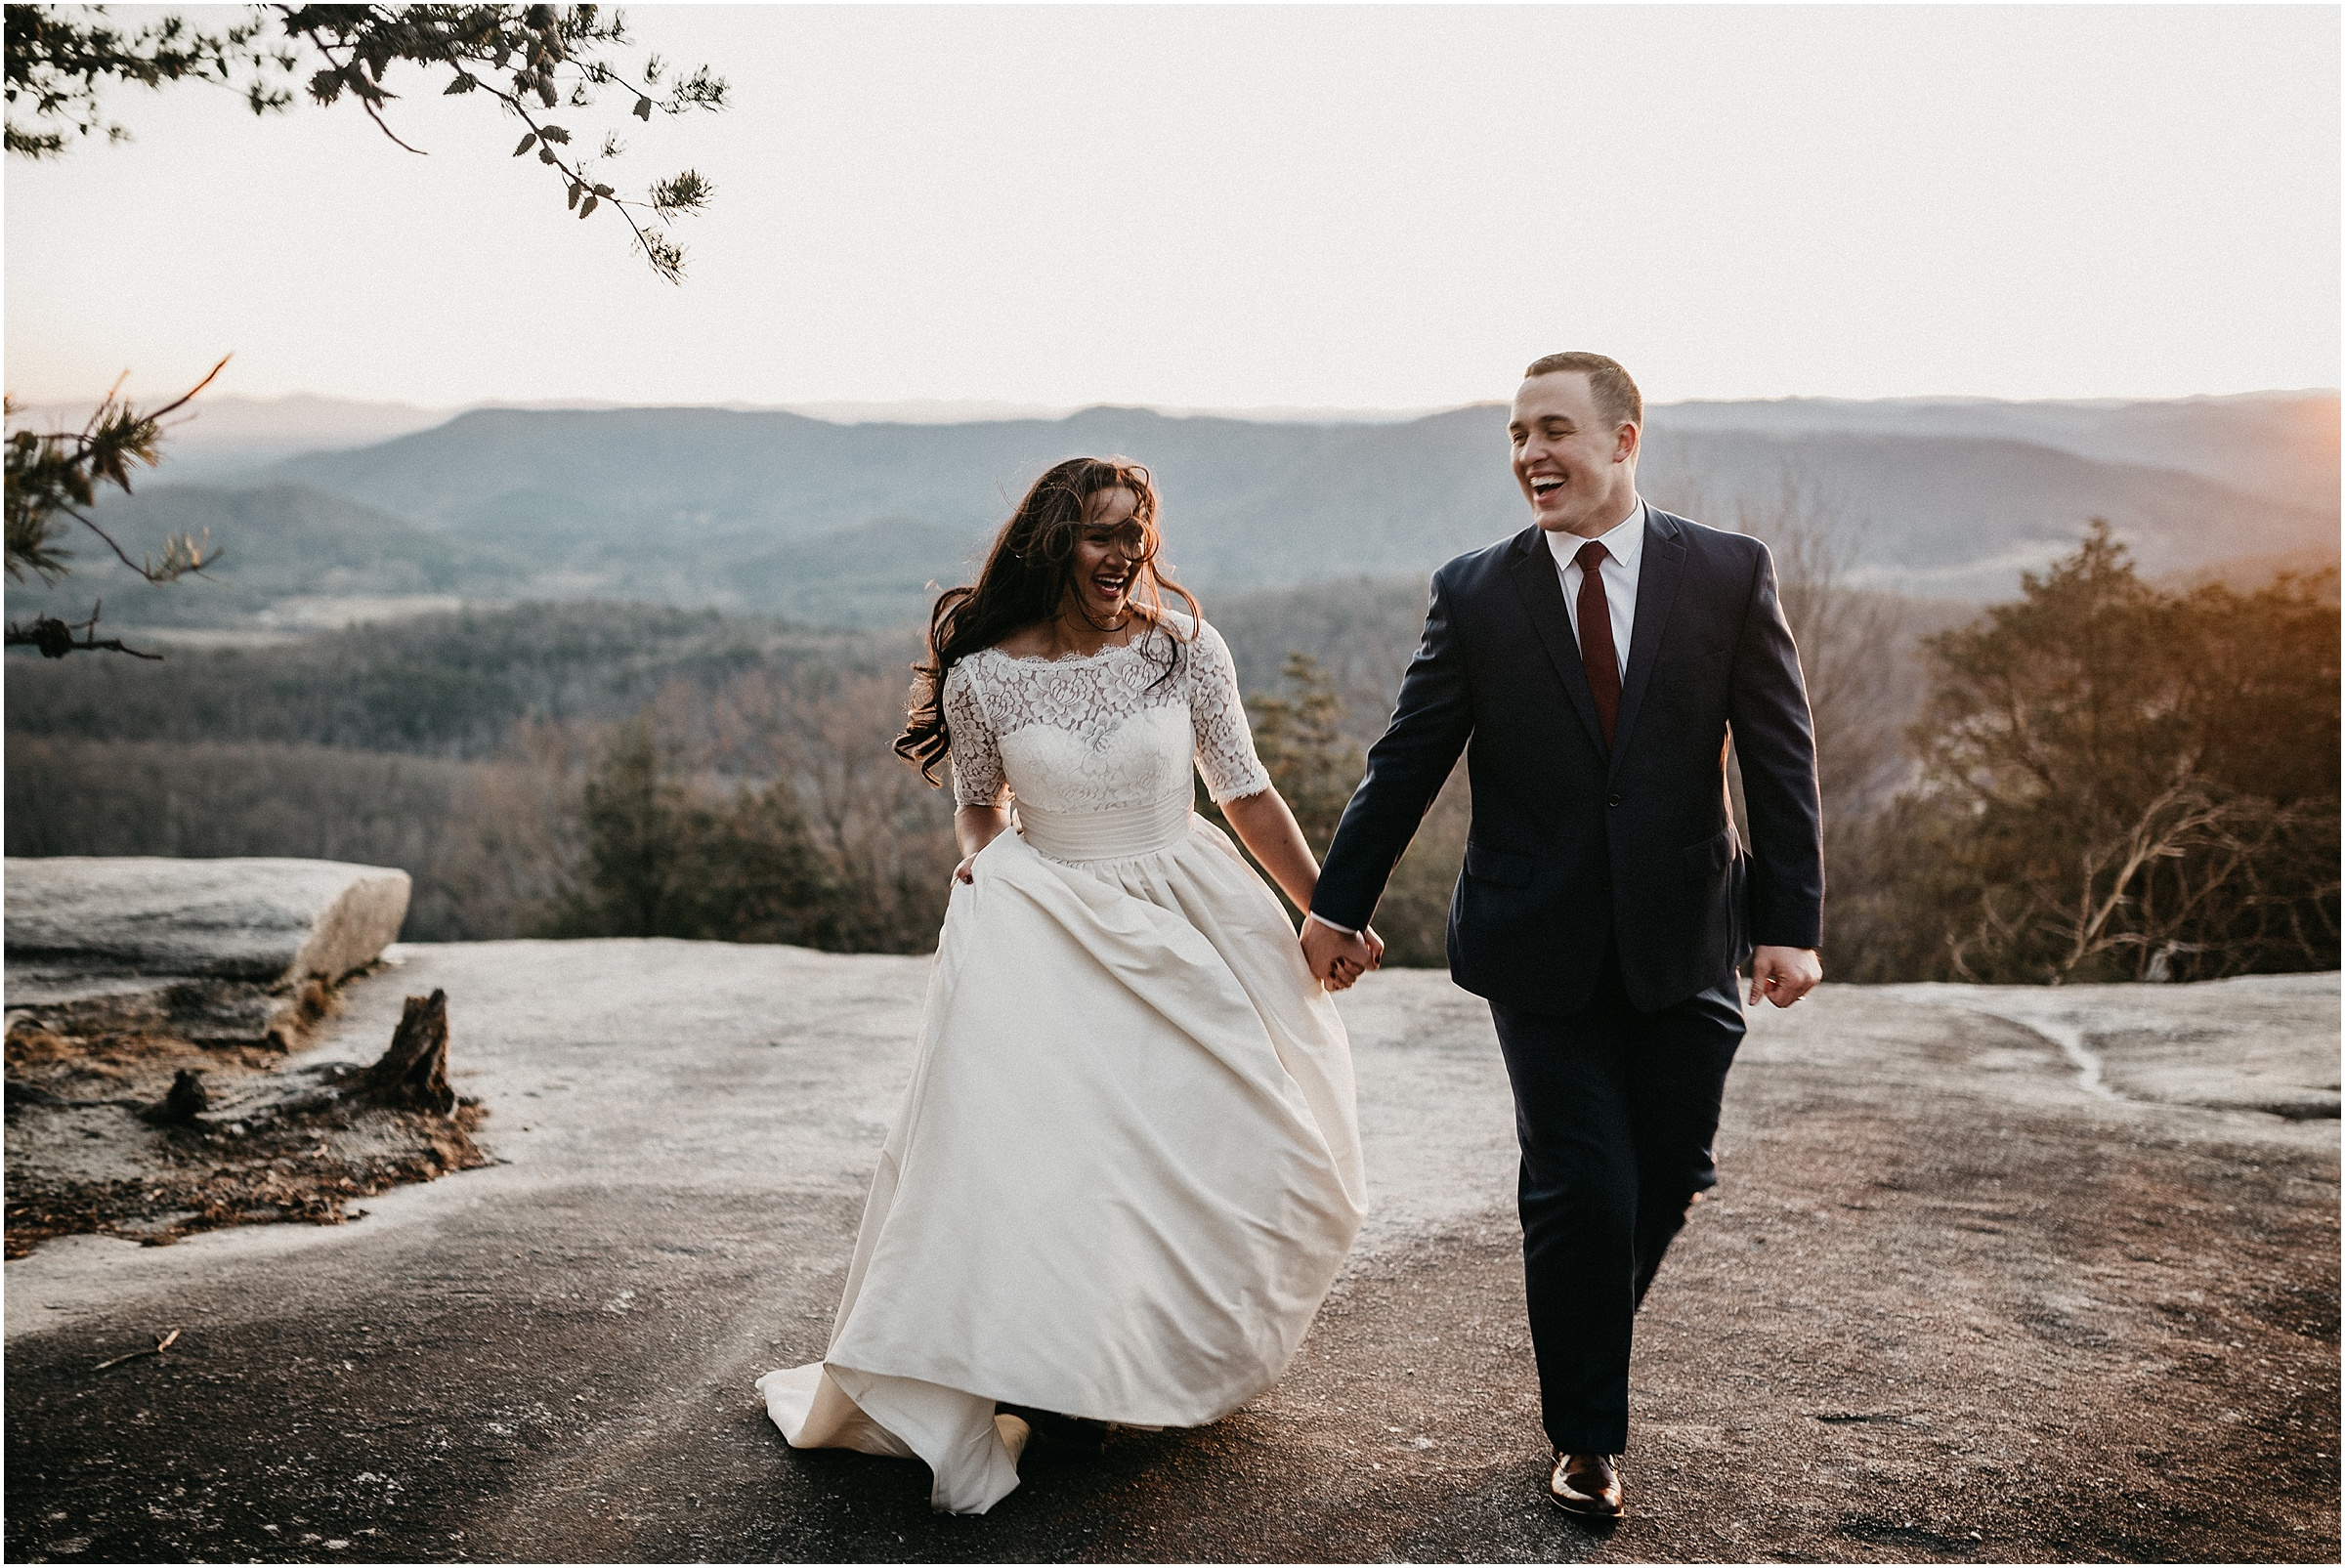 Stone_Mountain_NC_Elopement_60.JPG